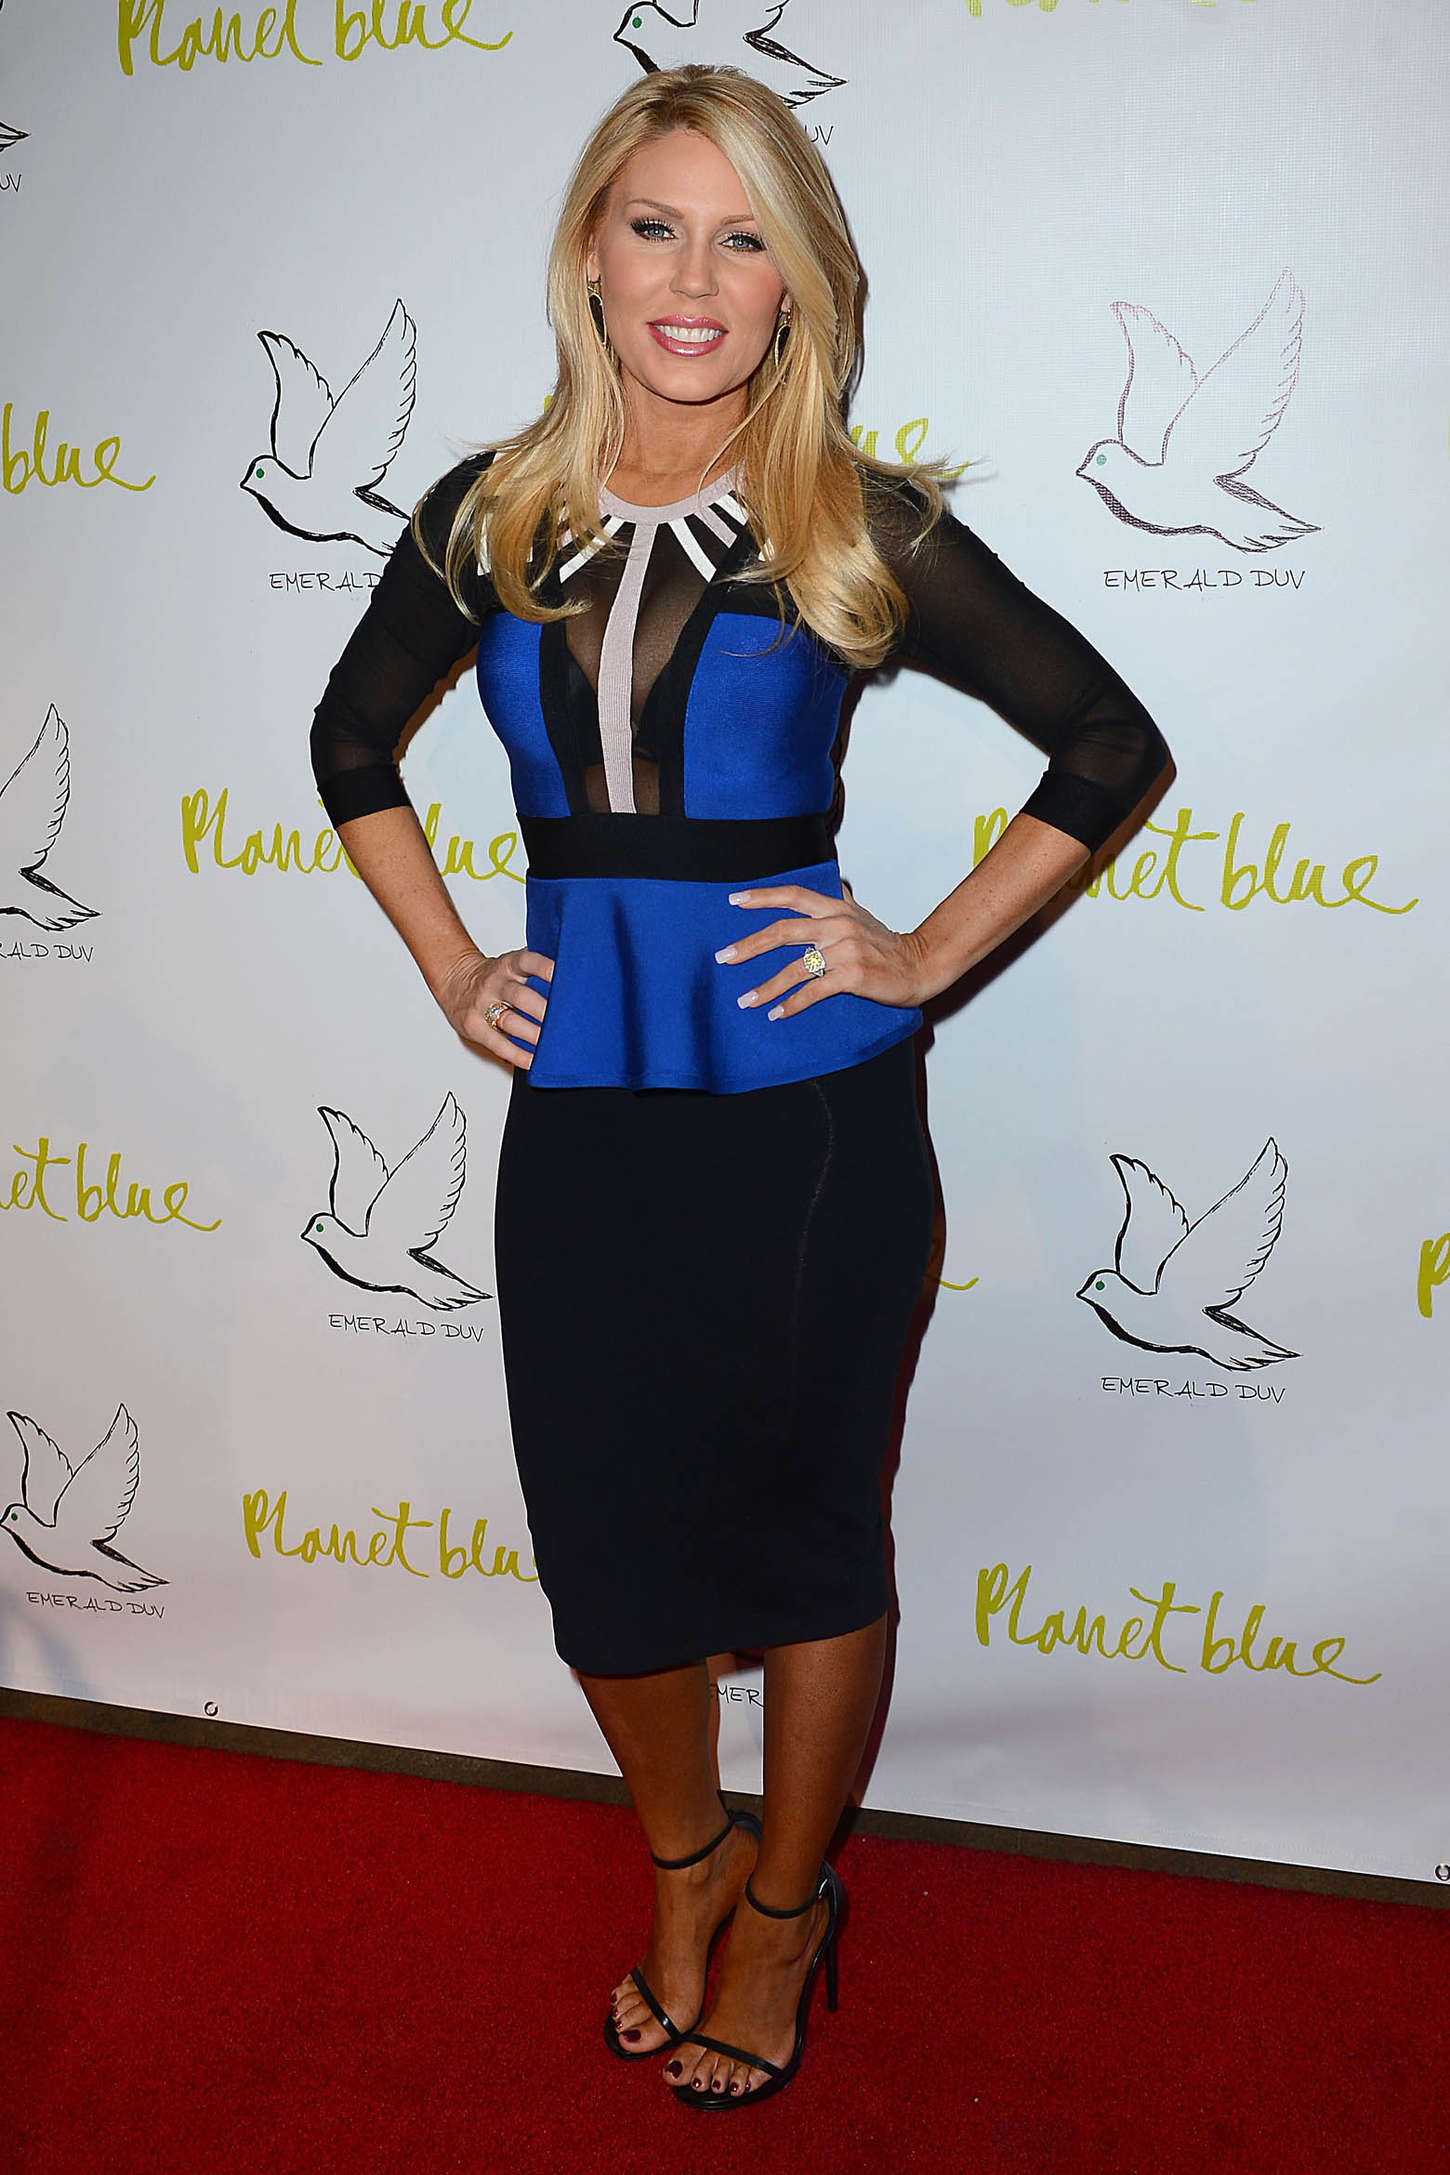 Gretchen Rossi Emerald Duv New Jewellery Line Launch in Beverly Hills